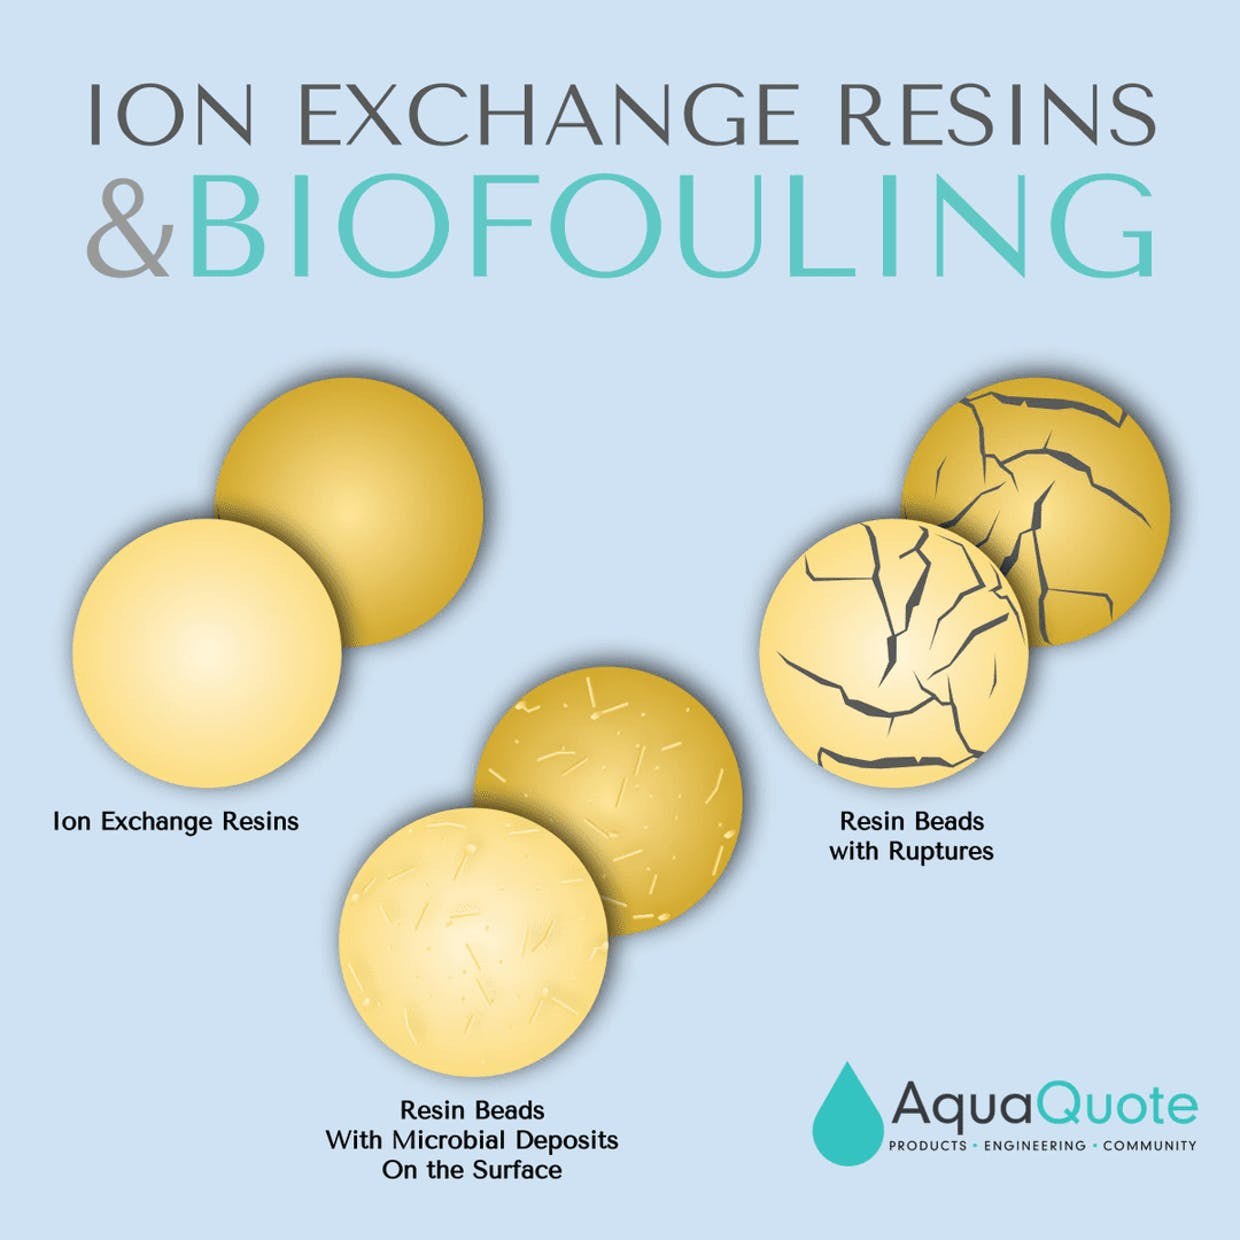 Ion Exchange Resins - types of damage due to resin fouling